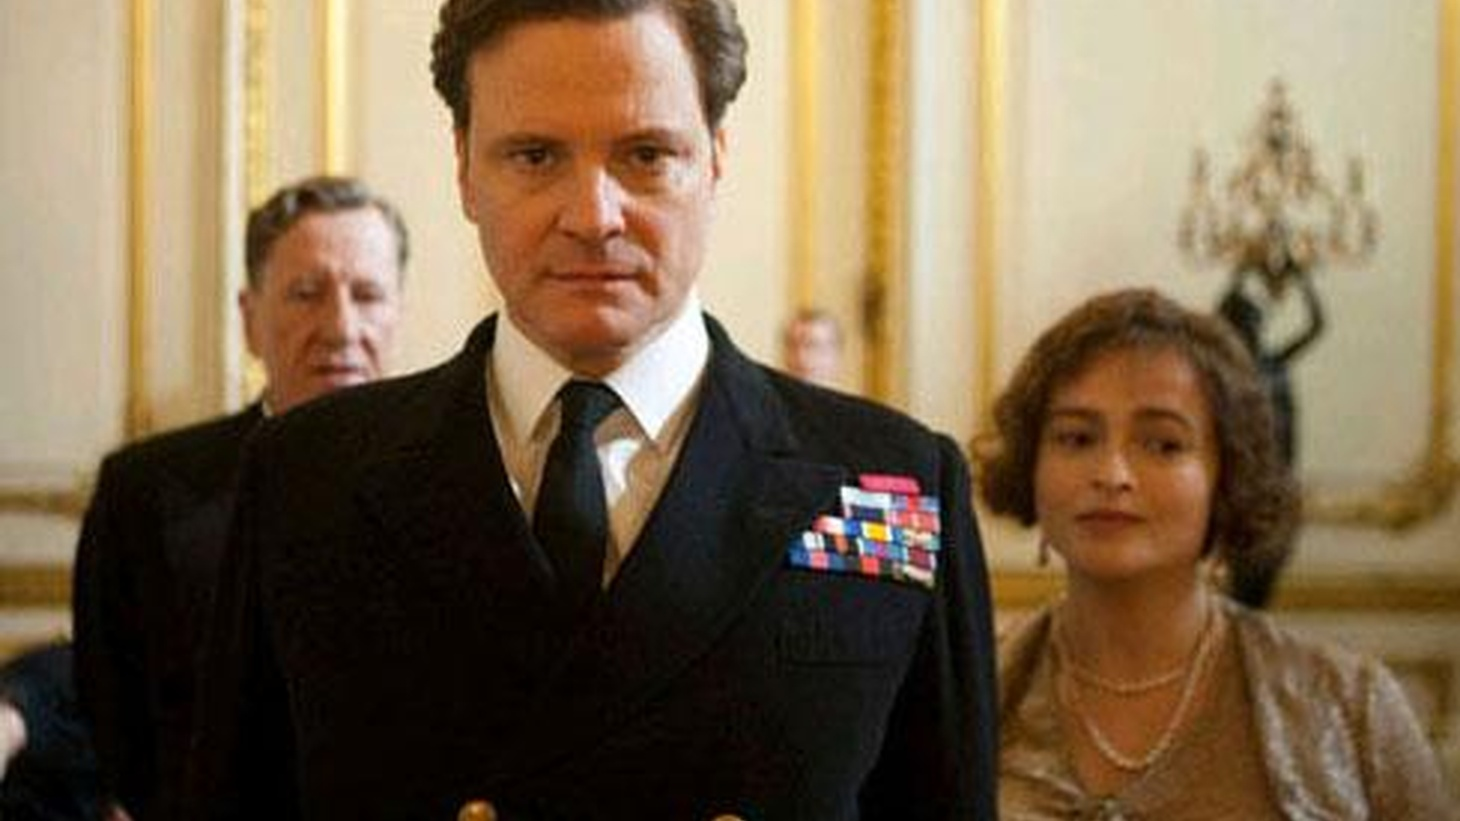 The King's Speech is one of the most pleasurable movies to come along in years. The pleasure starts with two magnificent performances: Colin Firth as King George VI, who's afflicted by a terrible stutter, and Geoffrey Rush as an unorthodox Australian speech therapist...   Once in a great while a debut feature leaves you blinking in amazement at the bountiful talent. Tiny Furniture did that for me. Lena Dunham, who's now 24 years old, is the writer, director and star of this marvelously strange, semi-autobiographical comedy about 22-year-old Aura, who diagnoses herself to be in a state of post-graduate delirium...